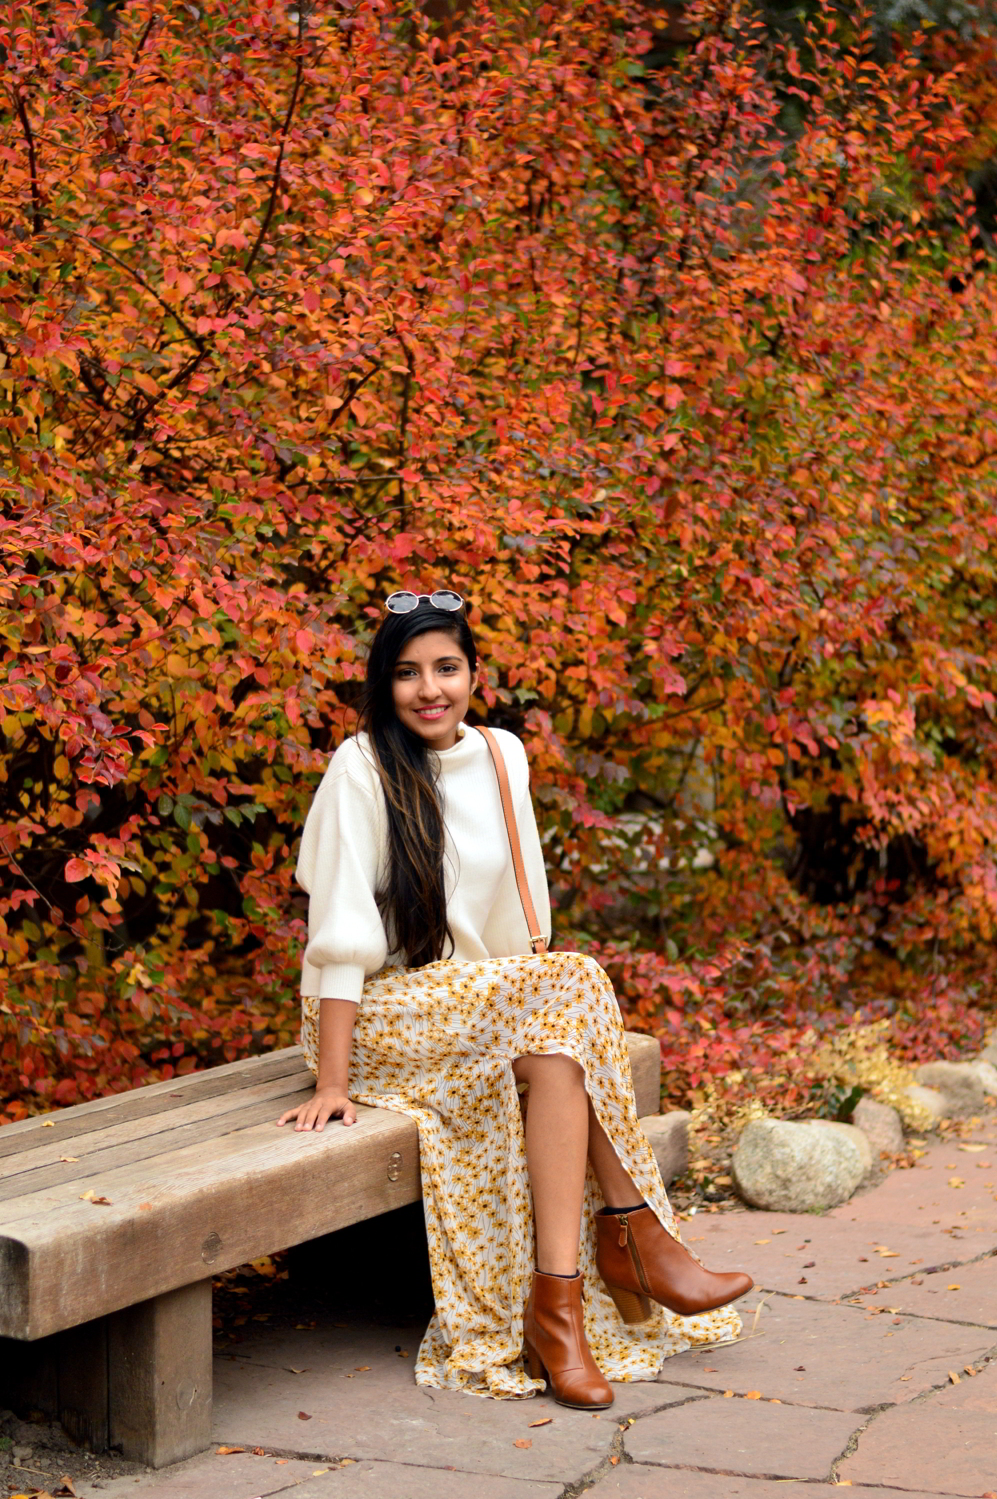 turtleneck-sweater-floral-maxi-dress-fall-layers-style-blogger-travel-Vail-Colorado 7